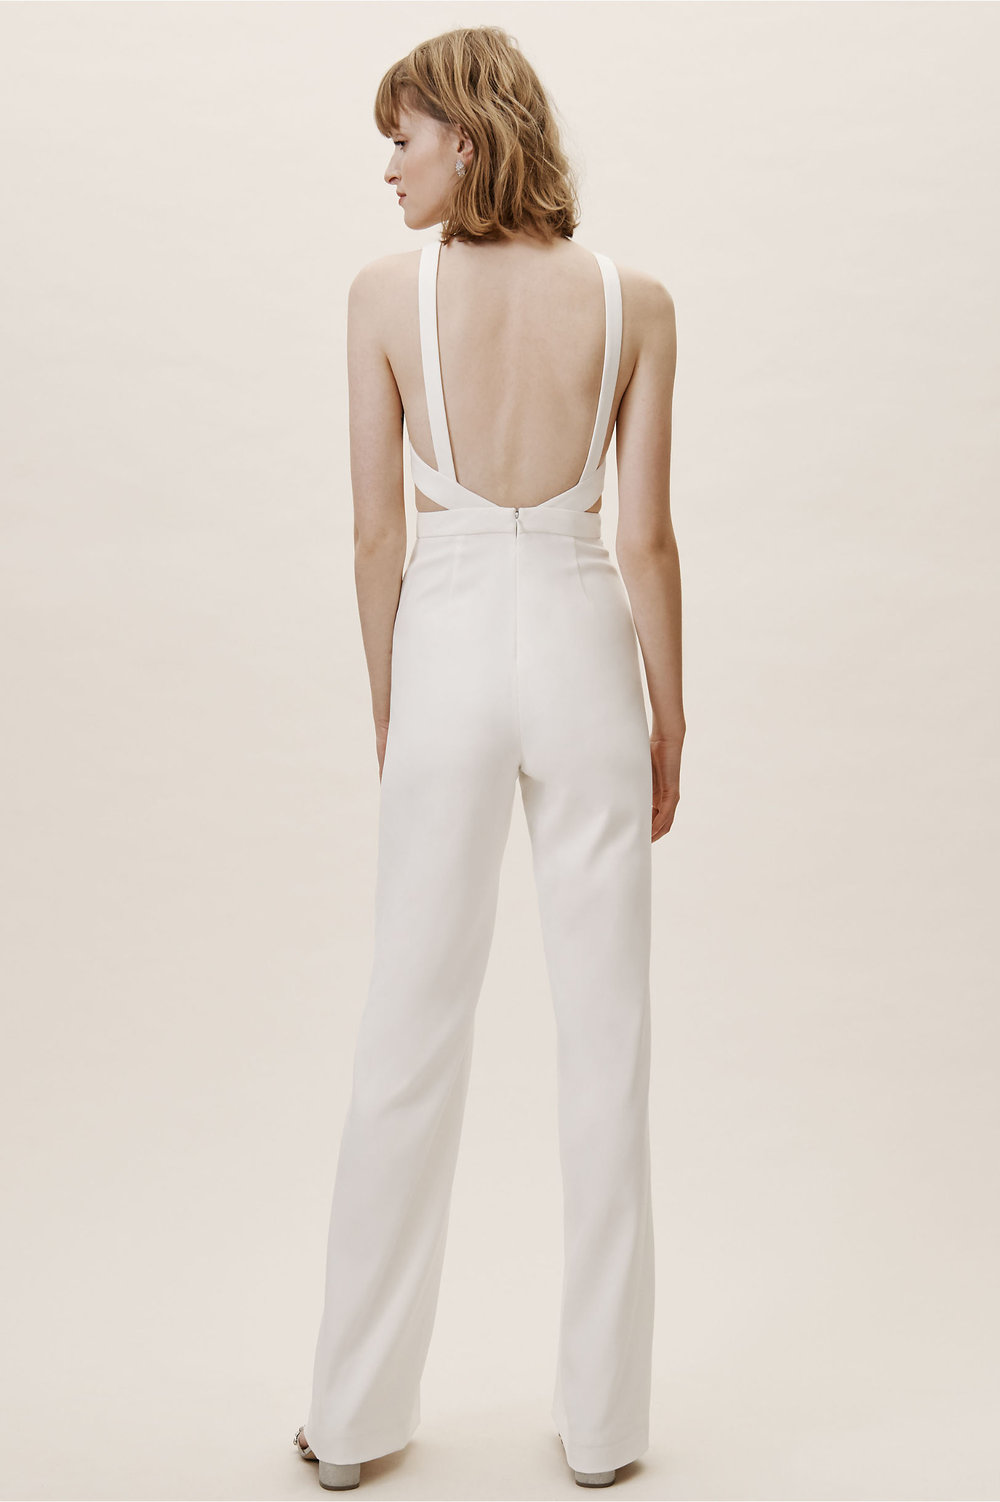 esmie jumpsuit ivory with side and back cutouts bhldn 2019 spring wedding collection